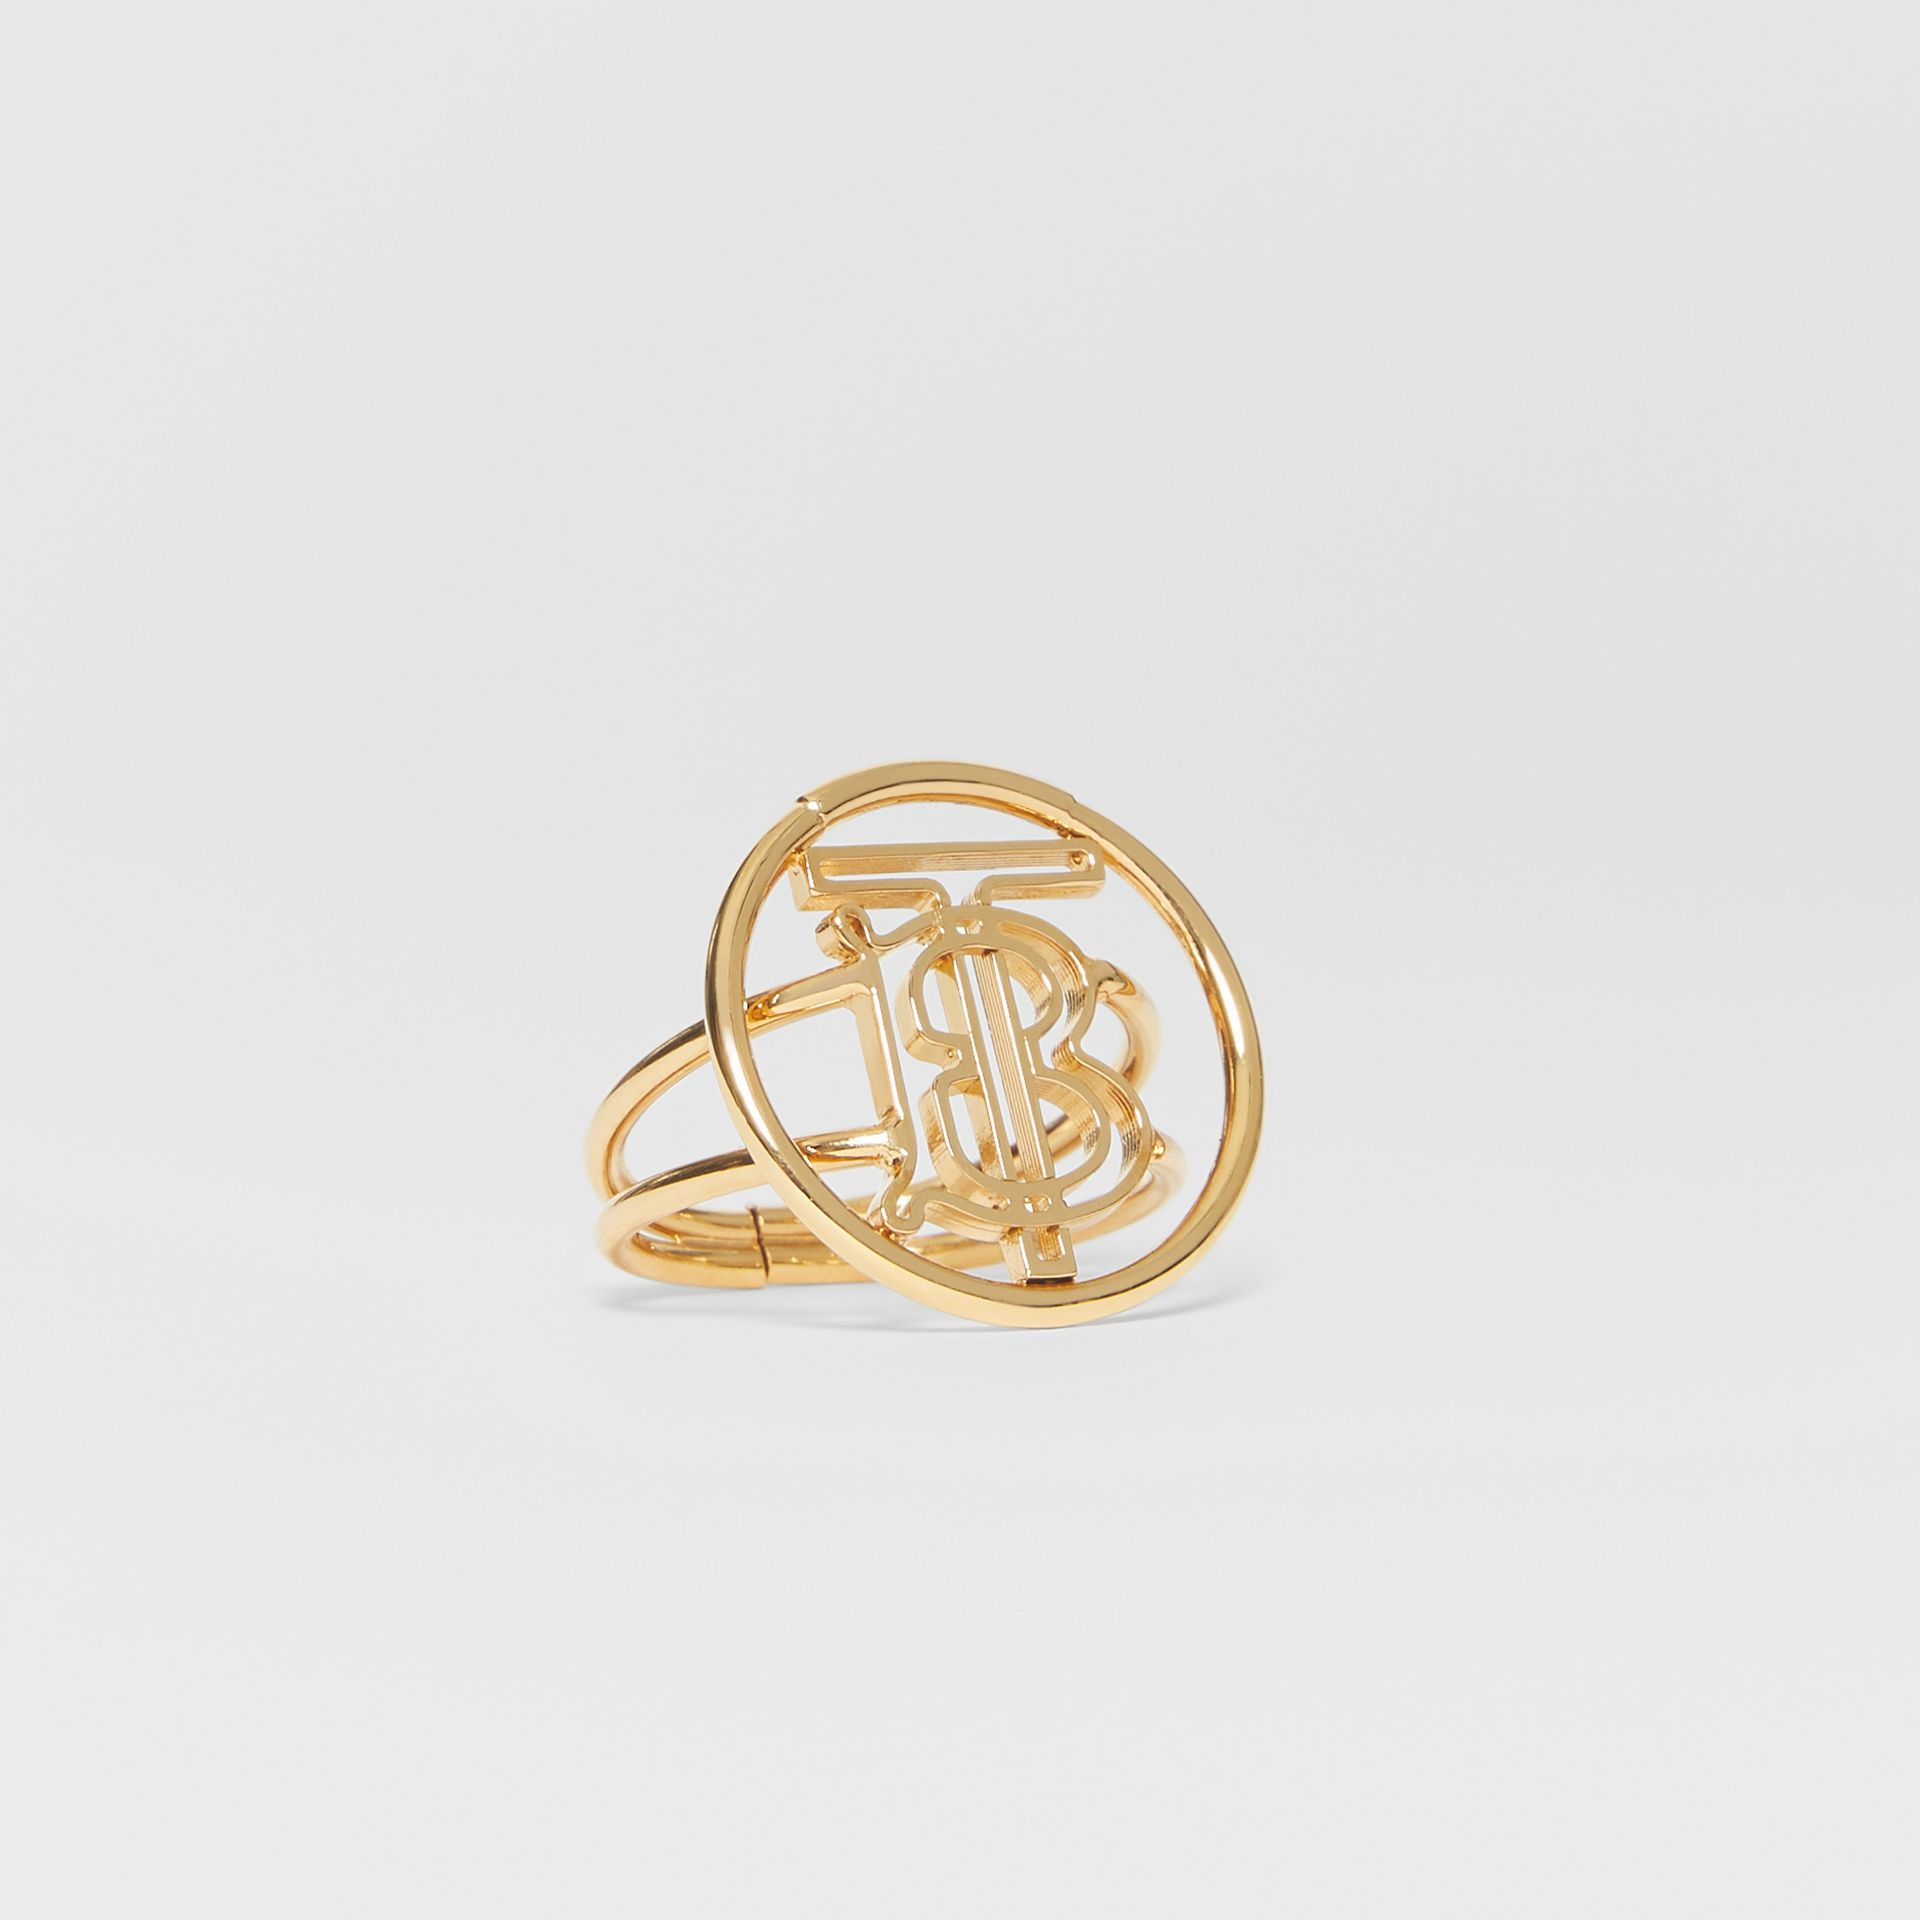 Large Gold-plated Monogram Motif Ring in Light - Women | Burberry - gallery image 2